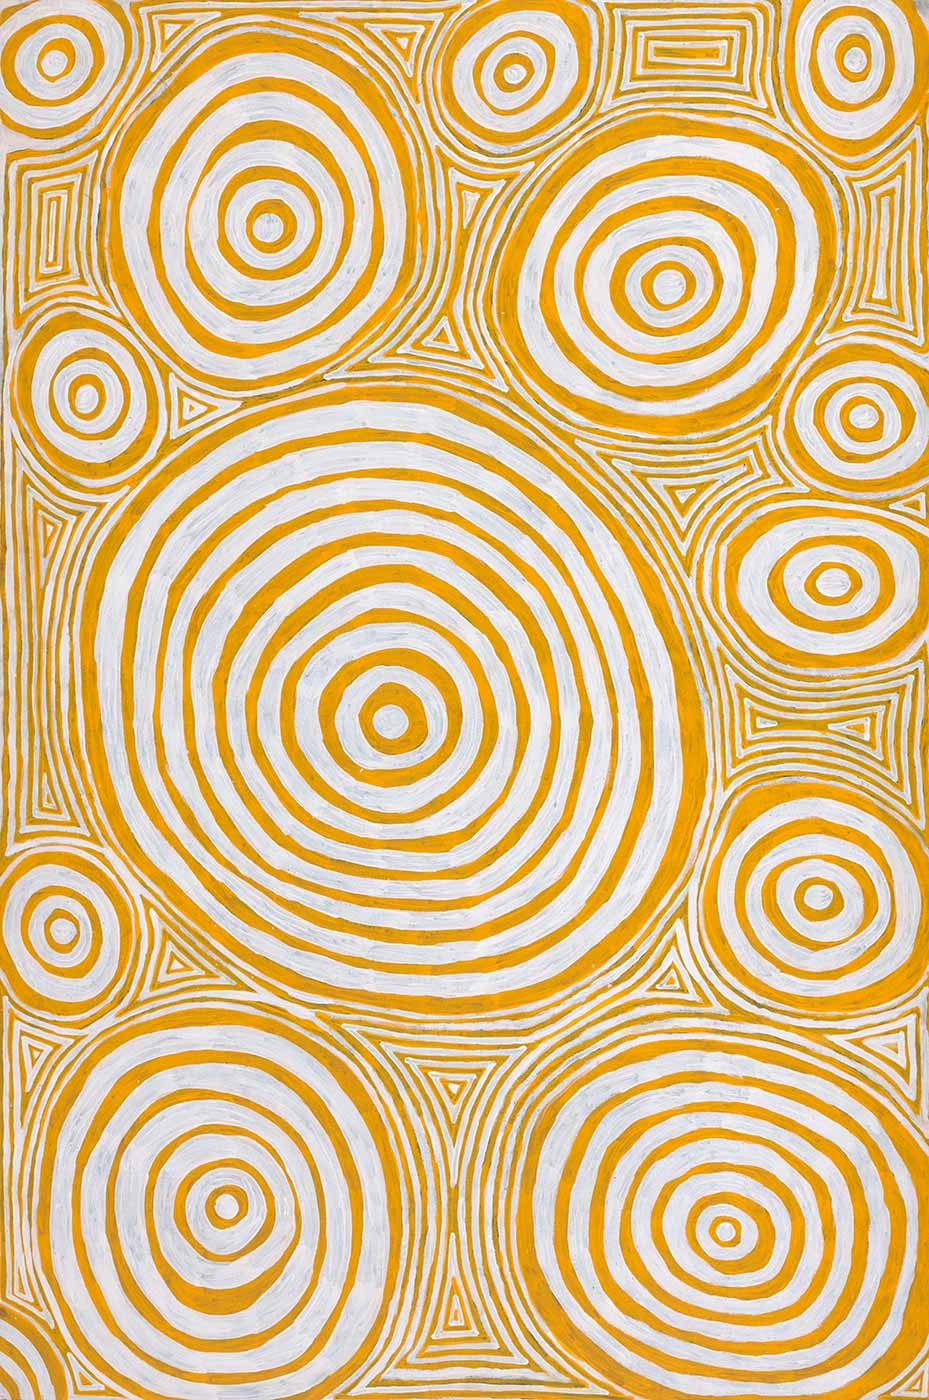 An acrylic on canvas circle and line painting. Several yellow and white circles are depicted across the painting with identical coloured lines in between.